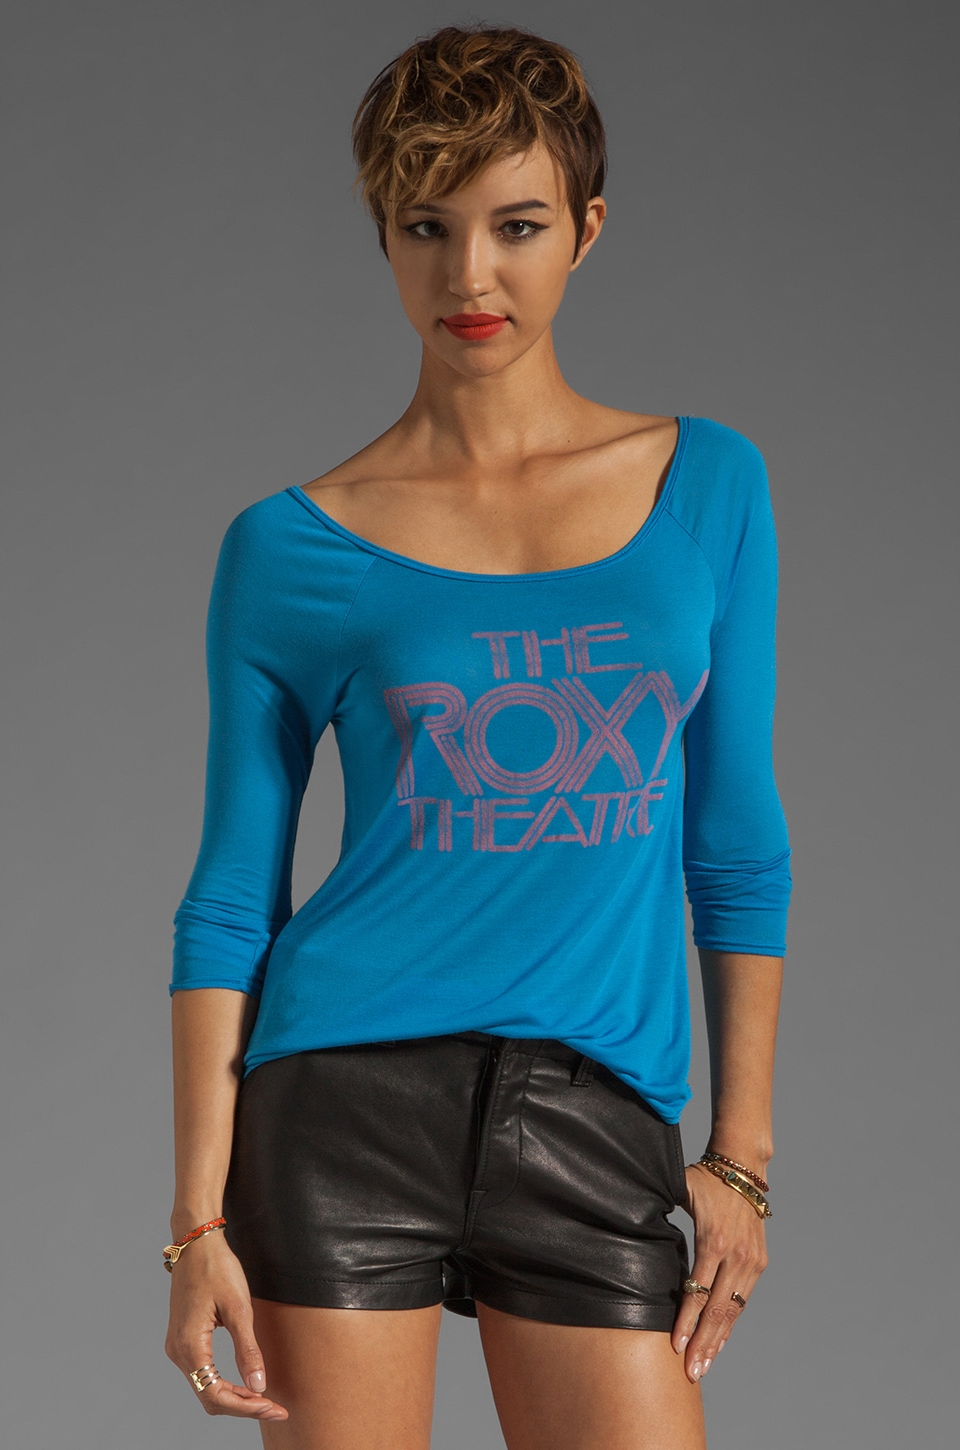 Chaser The Roxy Theatre Baseball Tee in Marine